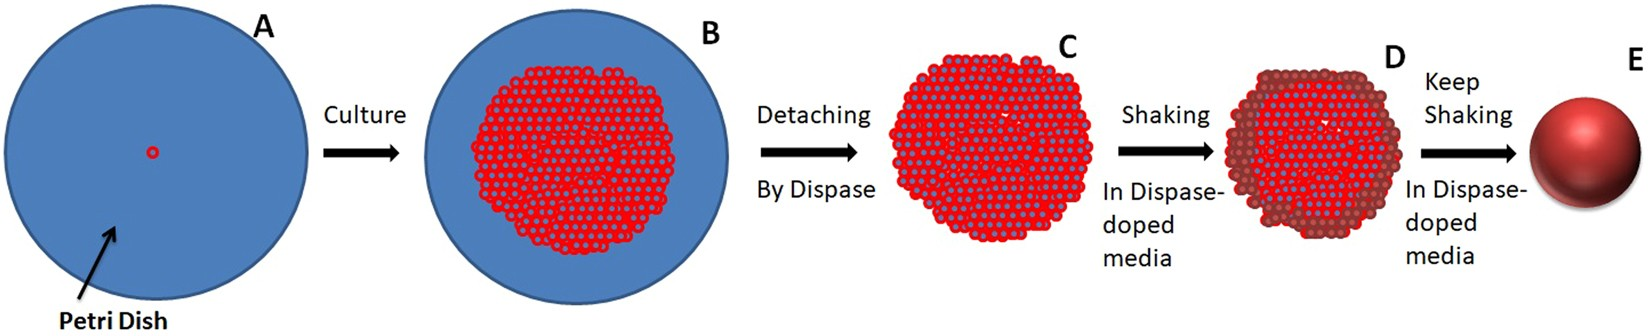 Facile Tumor Spheroids Formation In Large Quantity With